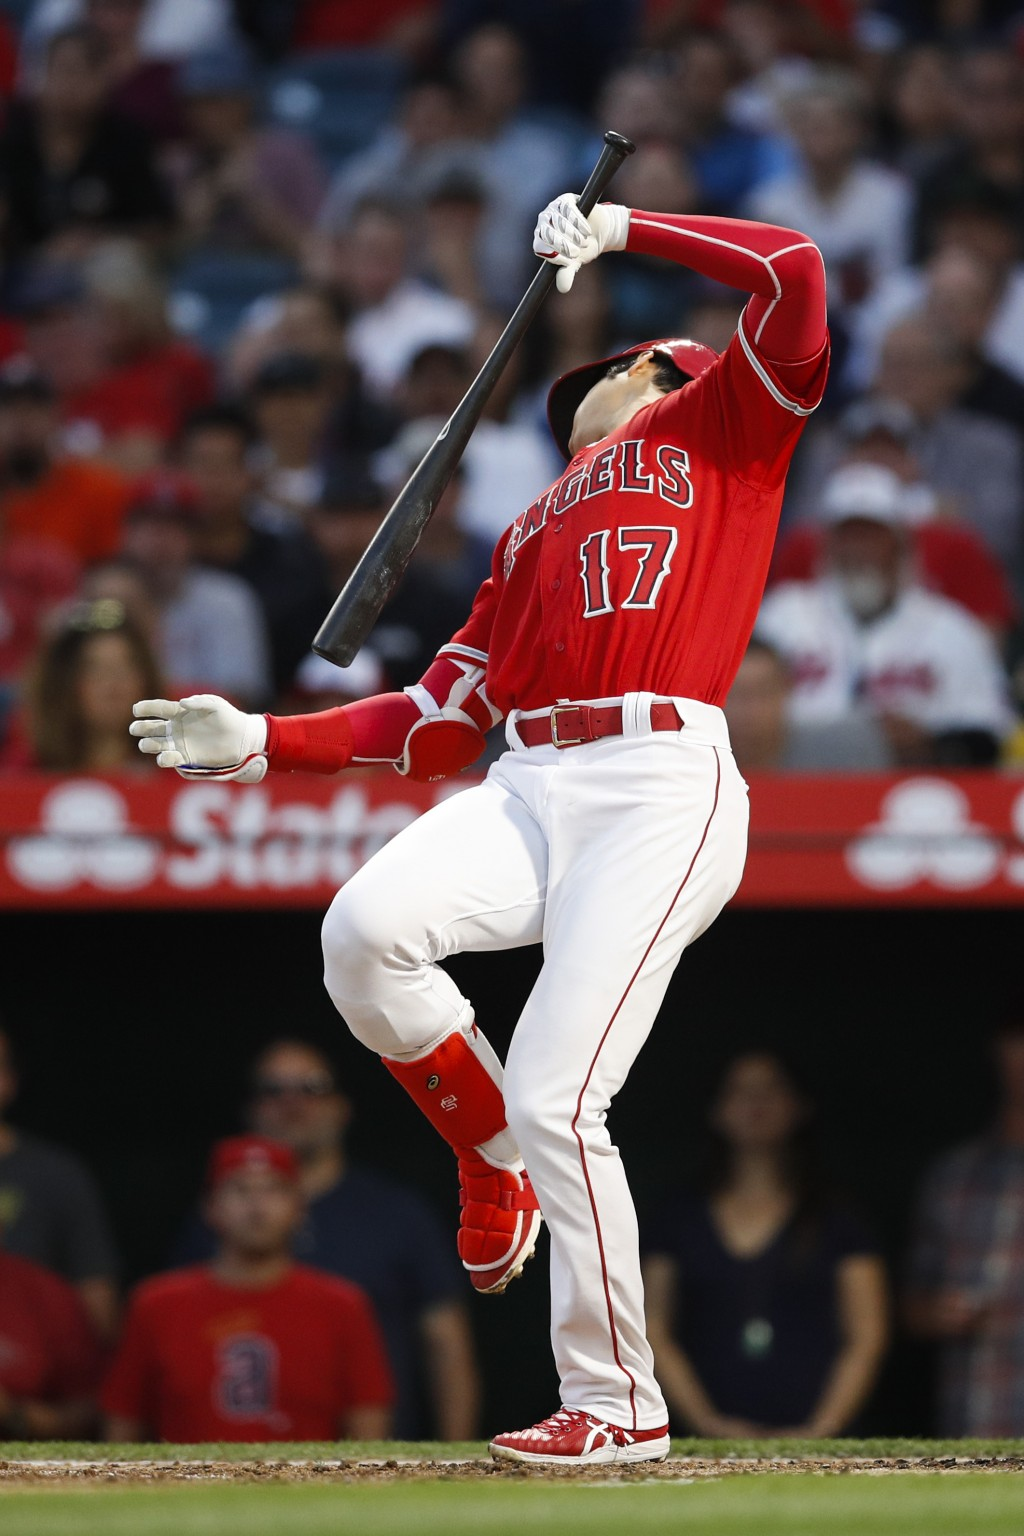 Los Angeles Angels' Shohei Ohtani, of Japan, loses balance after swinging at a pitch during the fourth inning of the team's baseball game against the